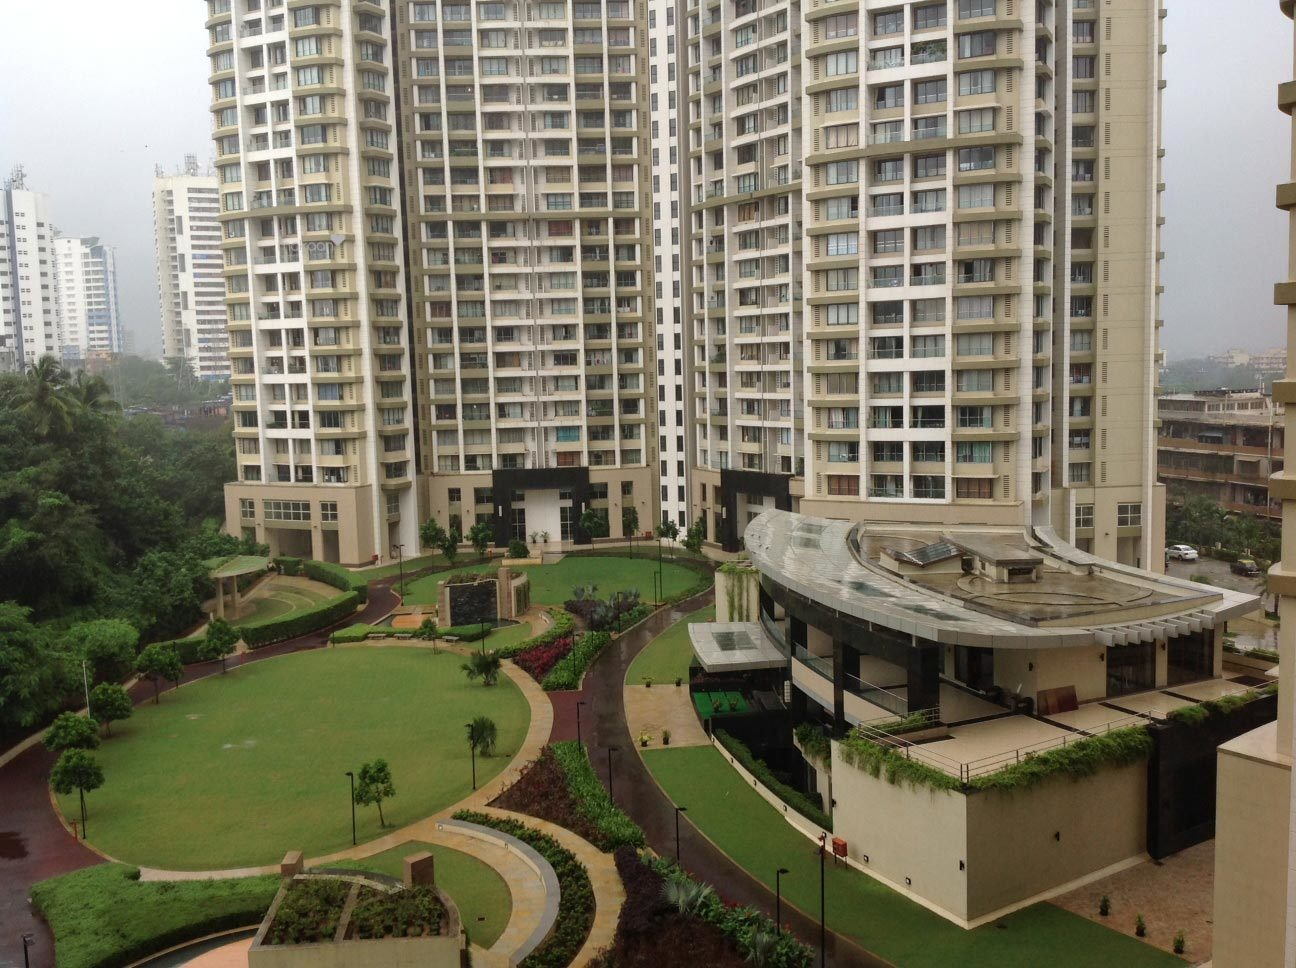 1950 sq ft 4BHK 4BHK+4T (1,950 sq ft) + Servant Room Property By Black and White Aventura In Ashok Gardens, Parel